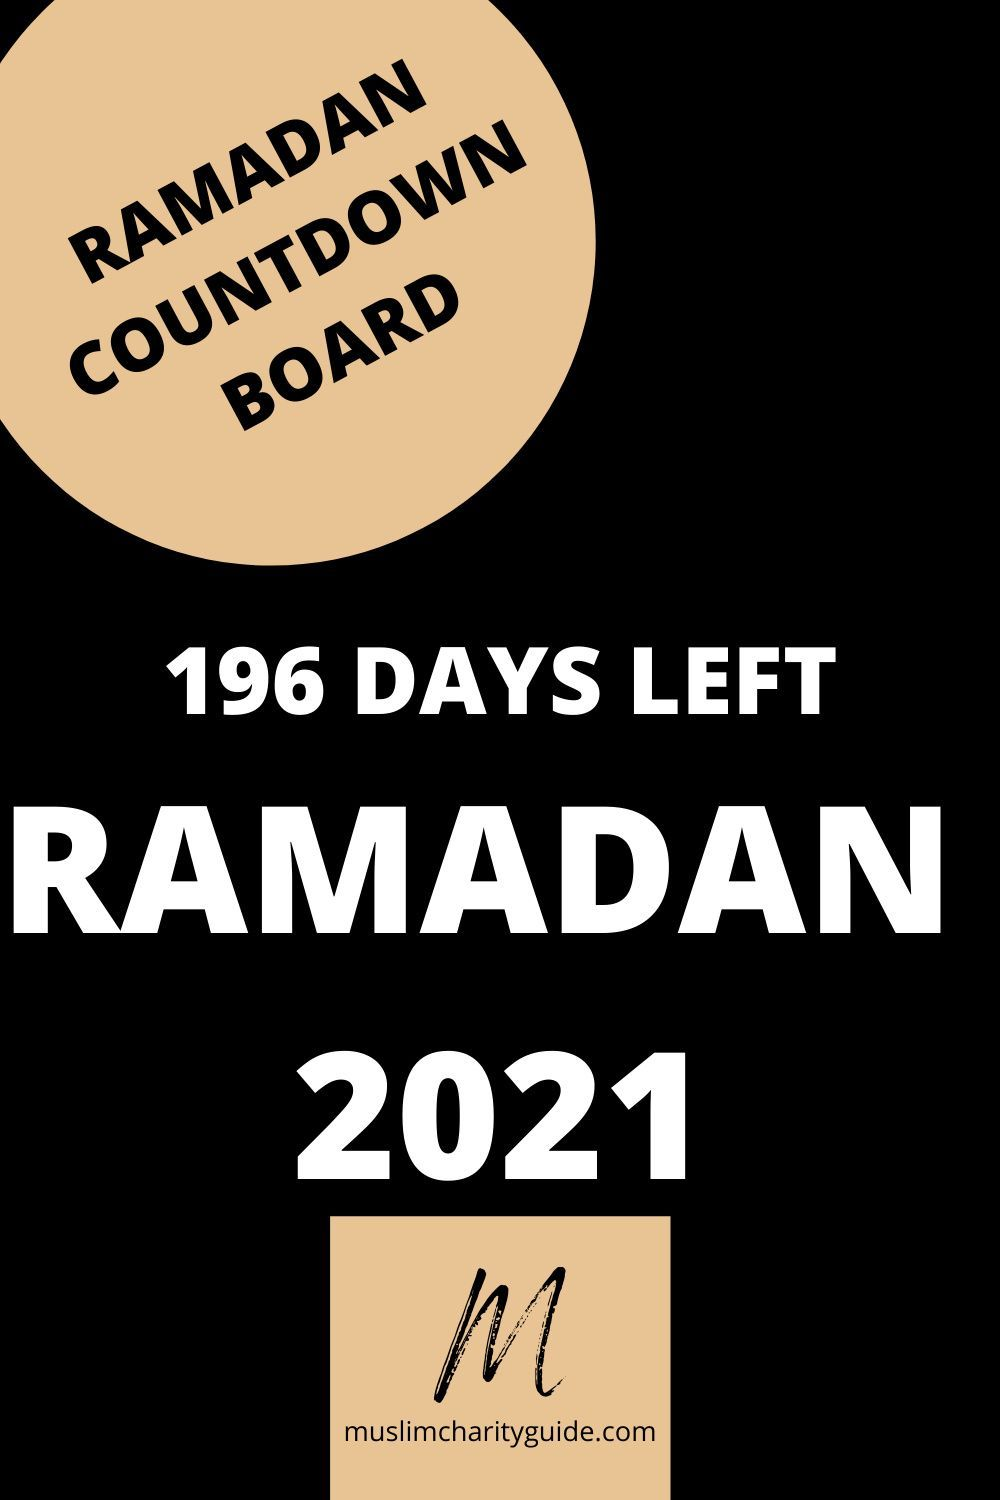 How To Prepare For Ramadan 2021 Ramadan Preparing For Ramadan The Hard Way